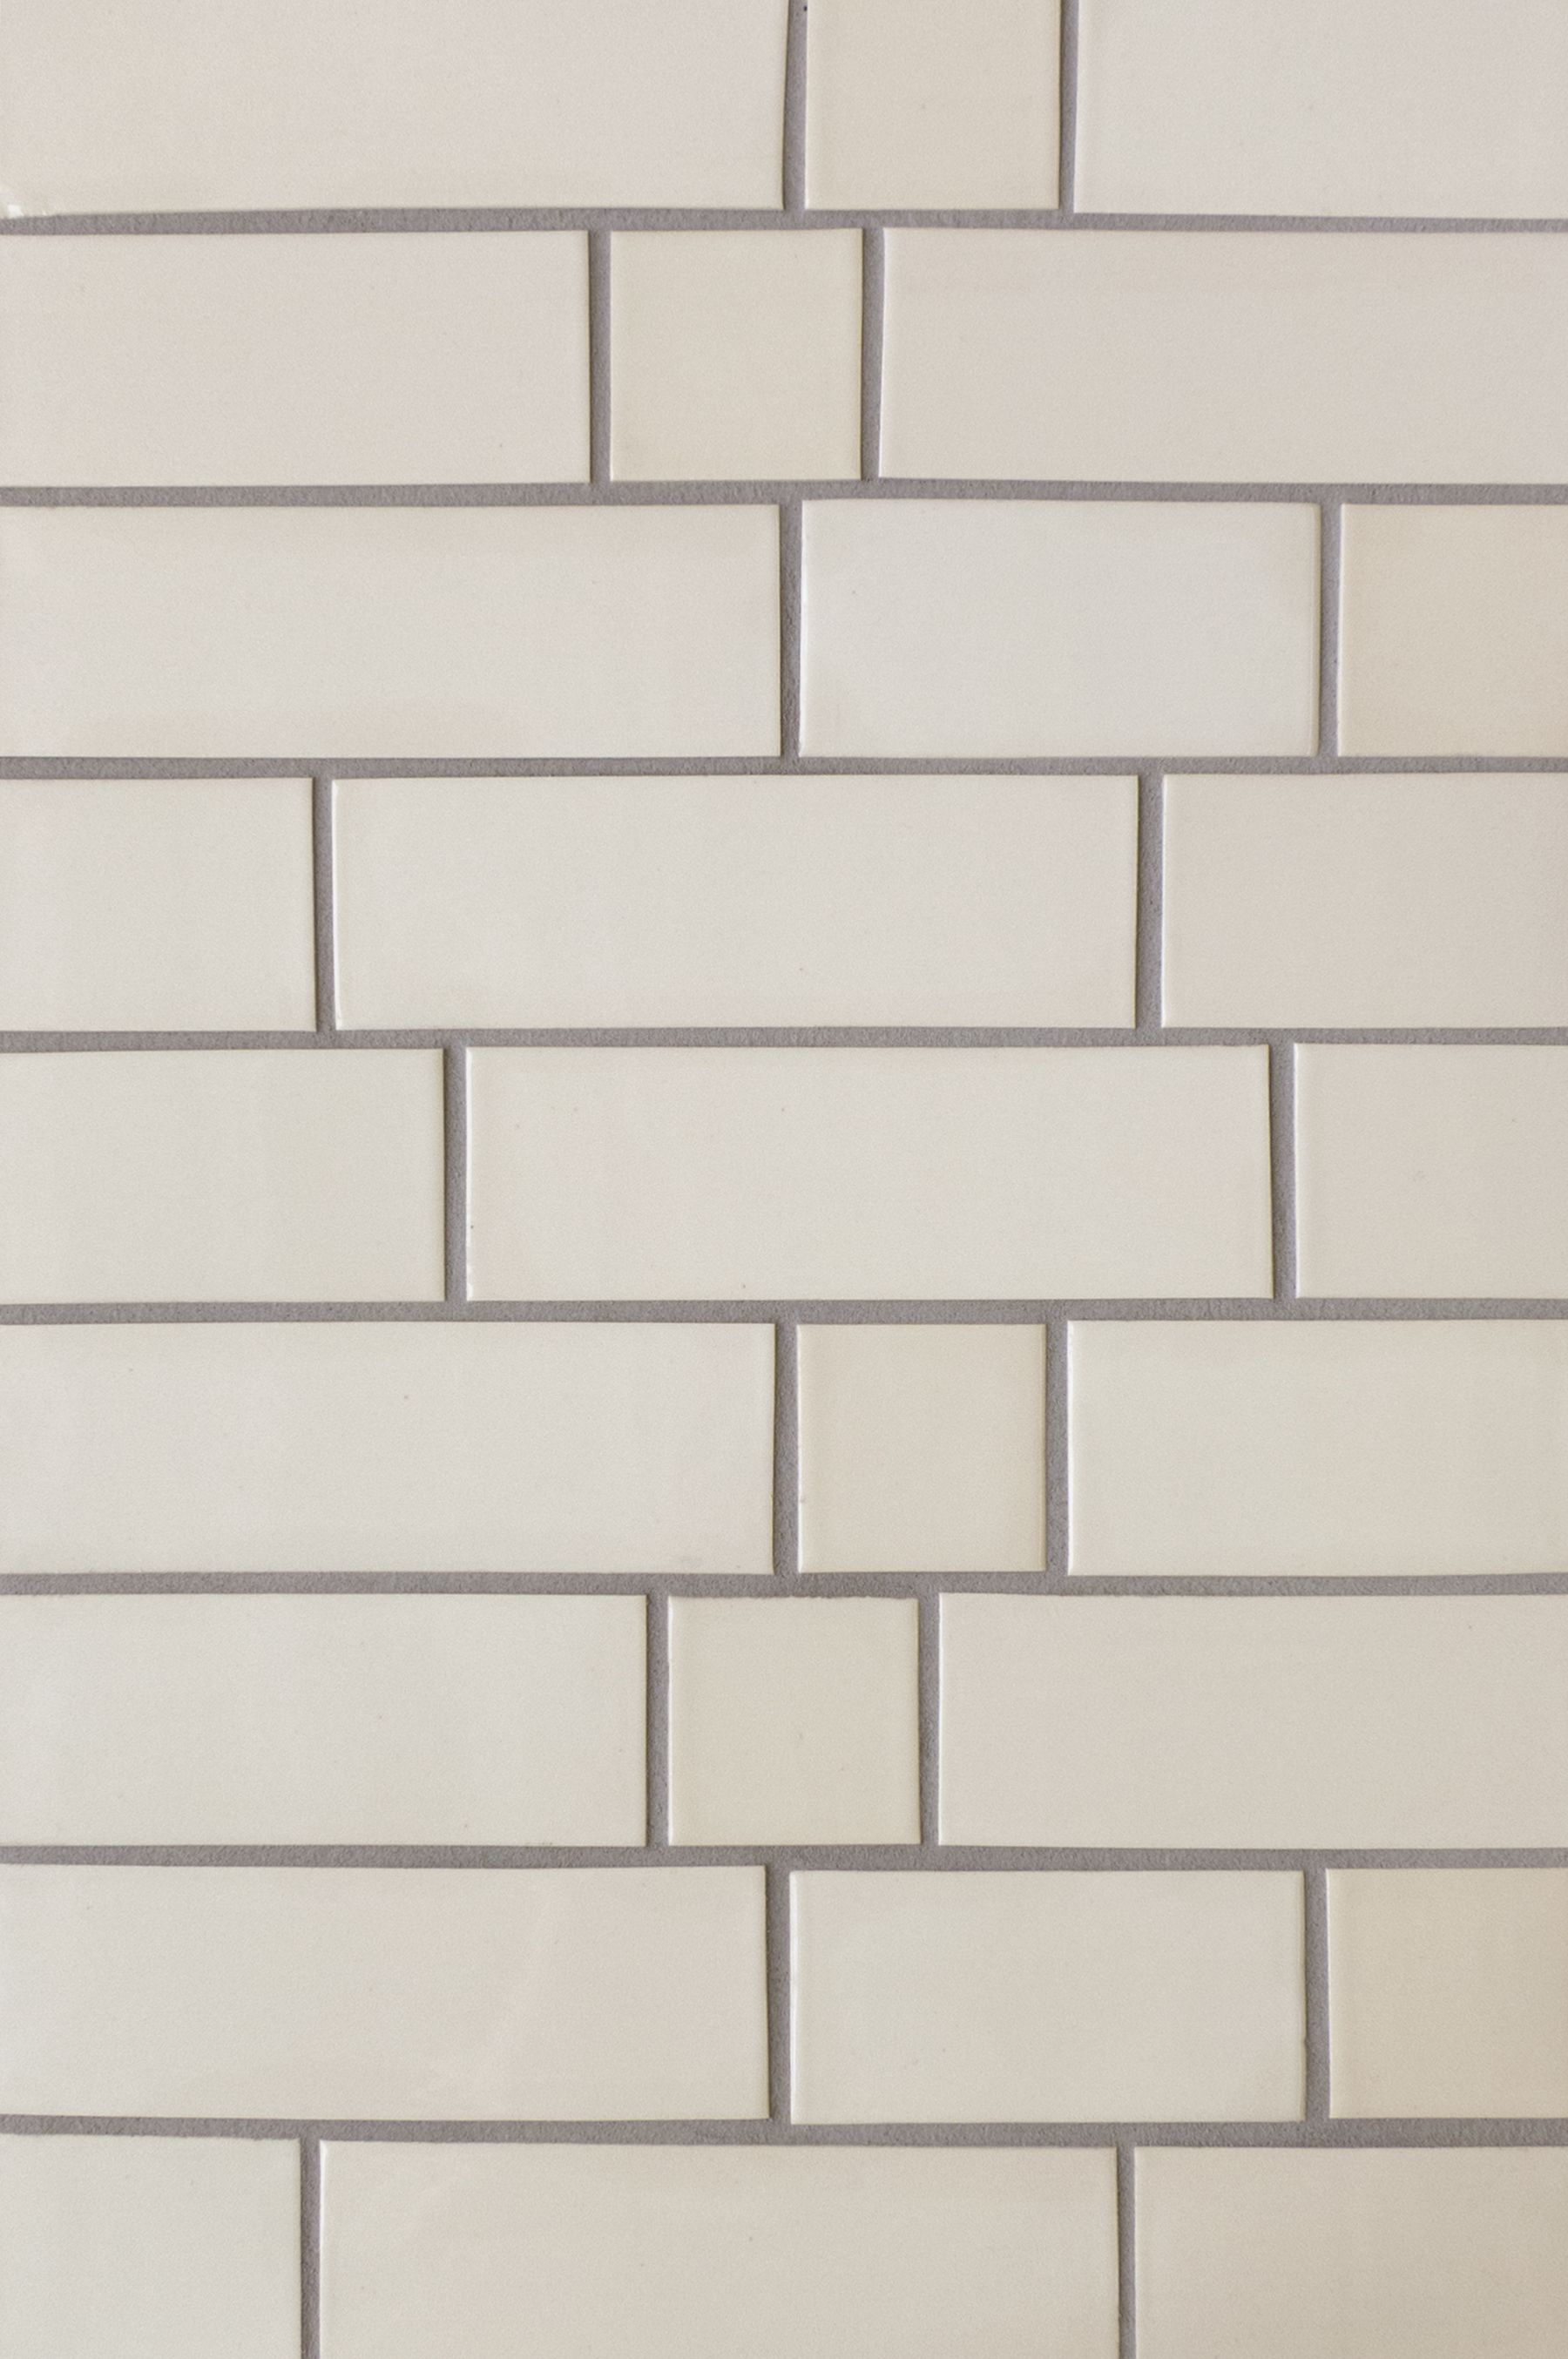 Field subway tile subway tiles fields and mosaics mercury mosaics 2x2 2x4 and 2x6 dailygadgetfo Choice Image